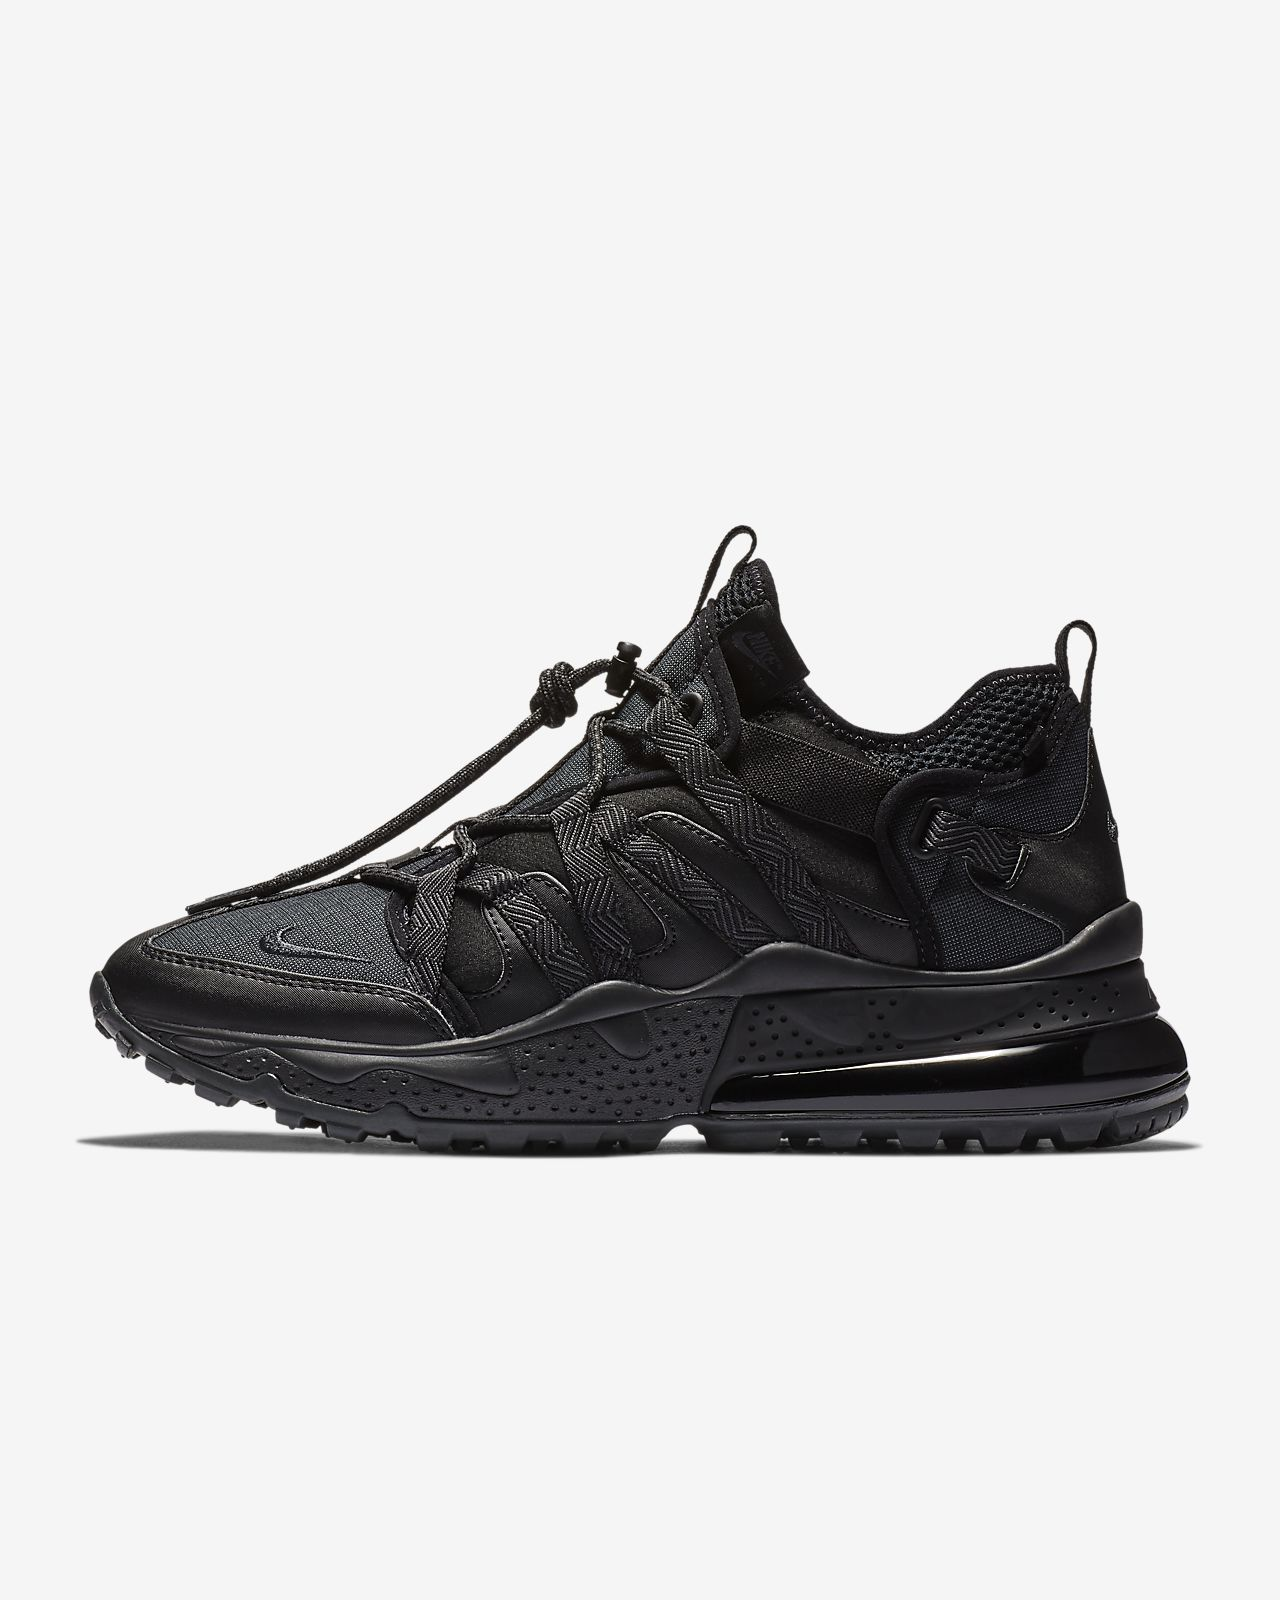 meet 06035 a1ef8 ... Nike Air Max 270 Bowfin Men s Shoe